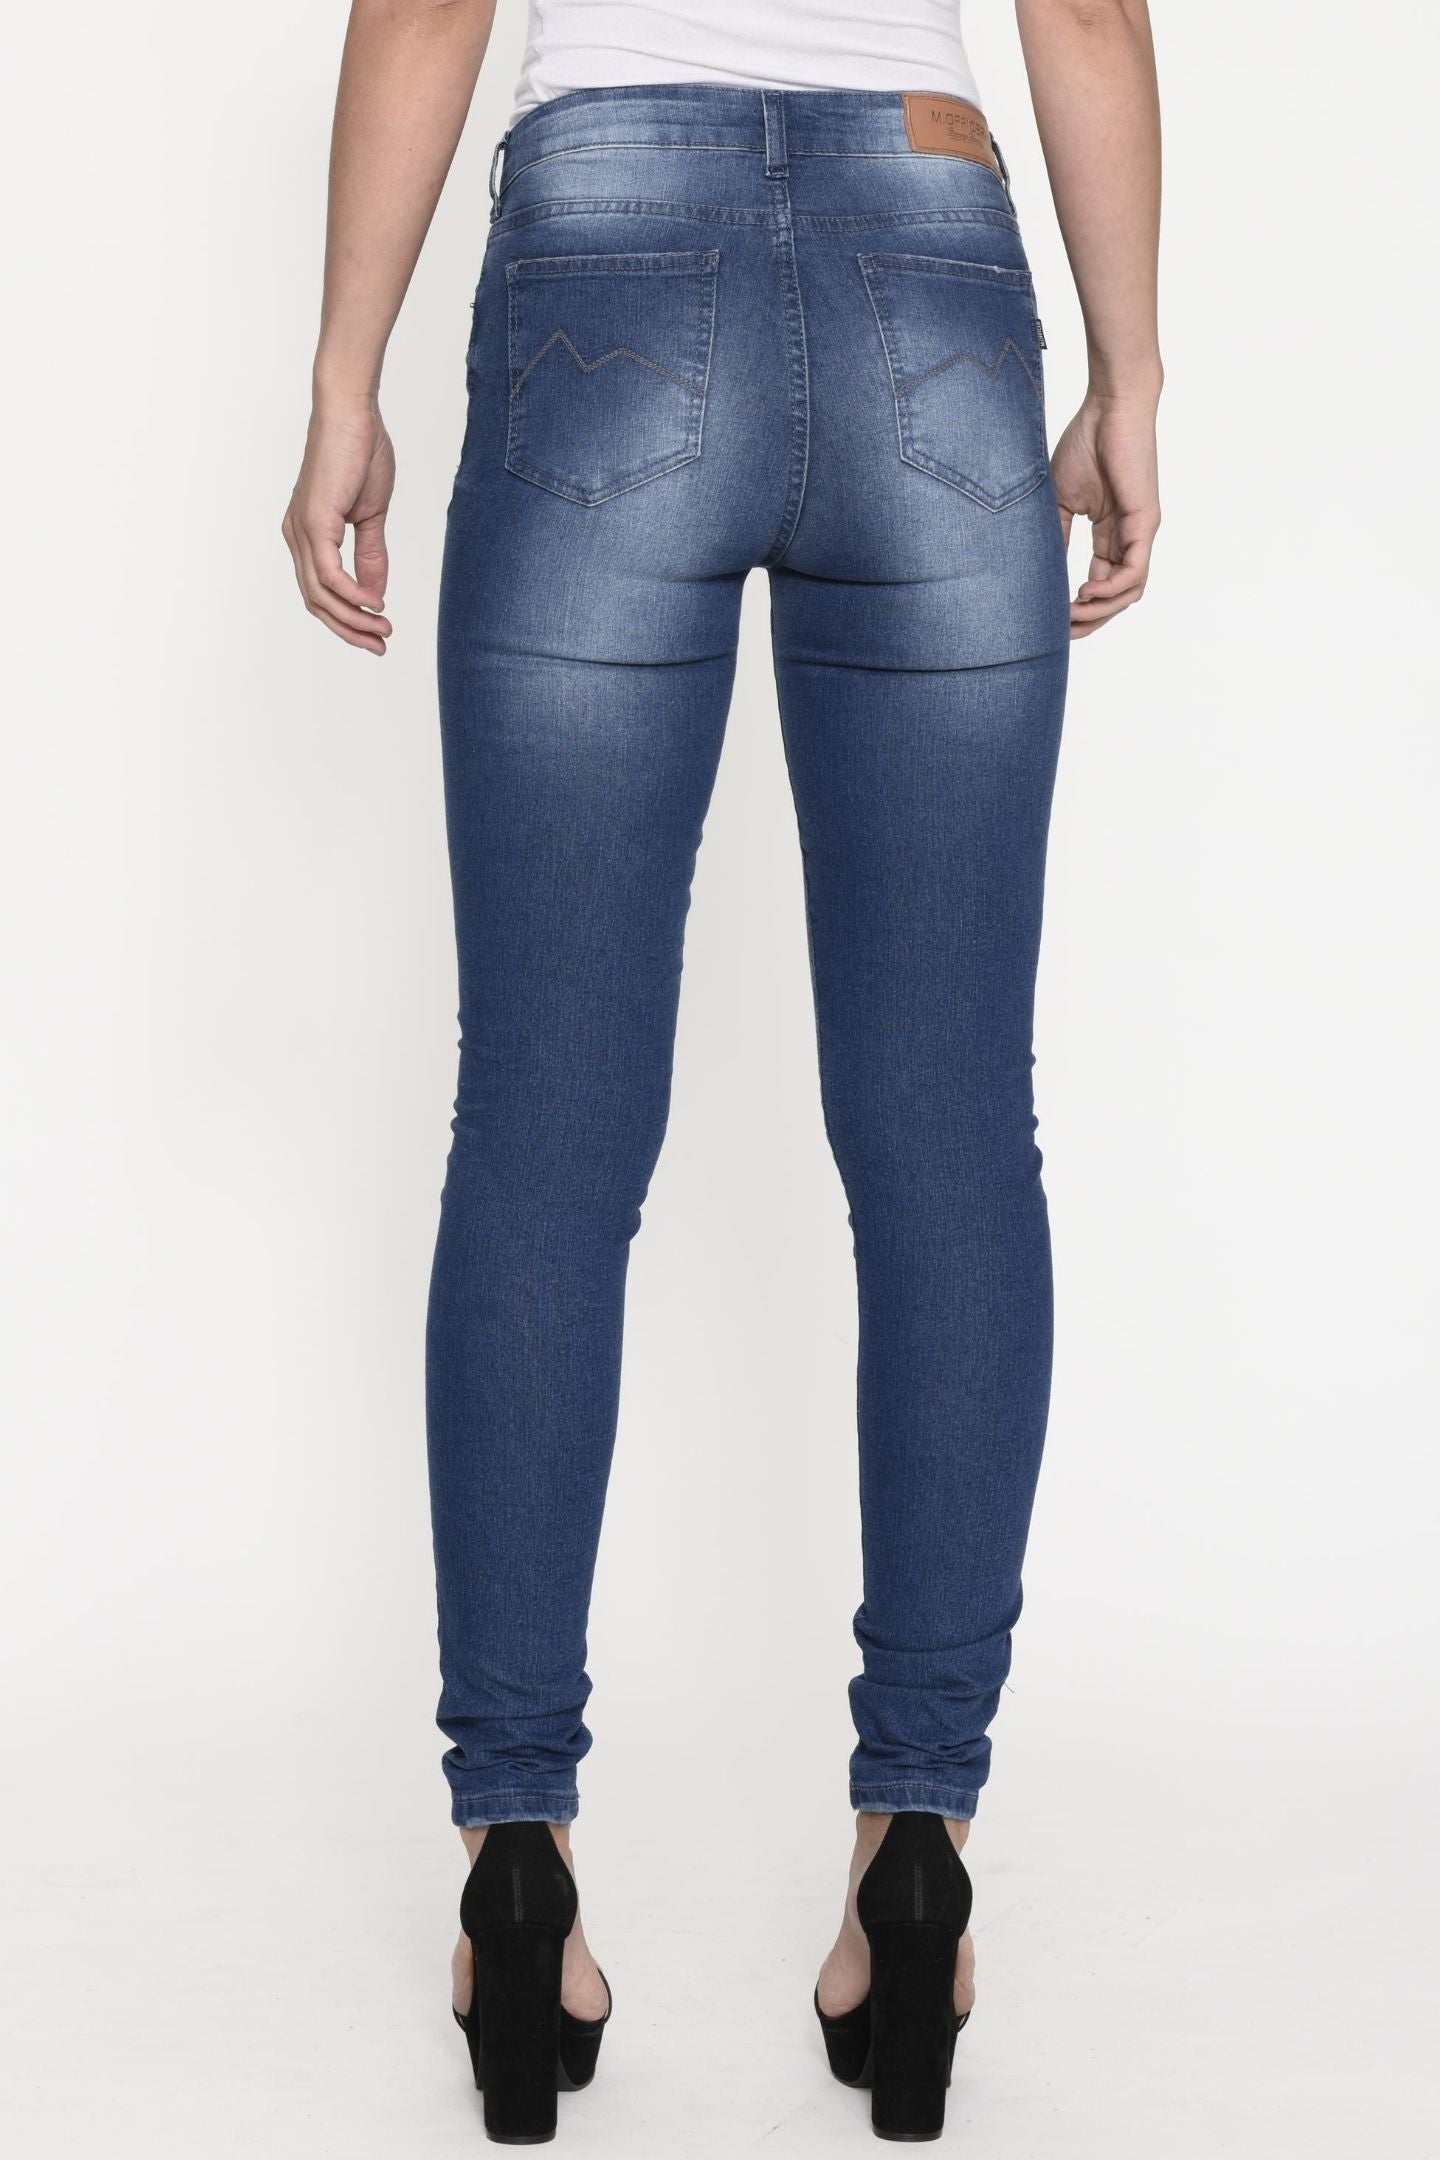 CALÇA JEANS SUPER SKINNY C3 BLUE WASH